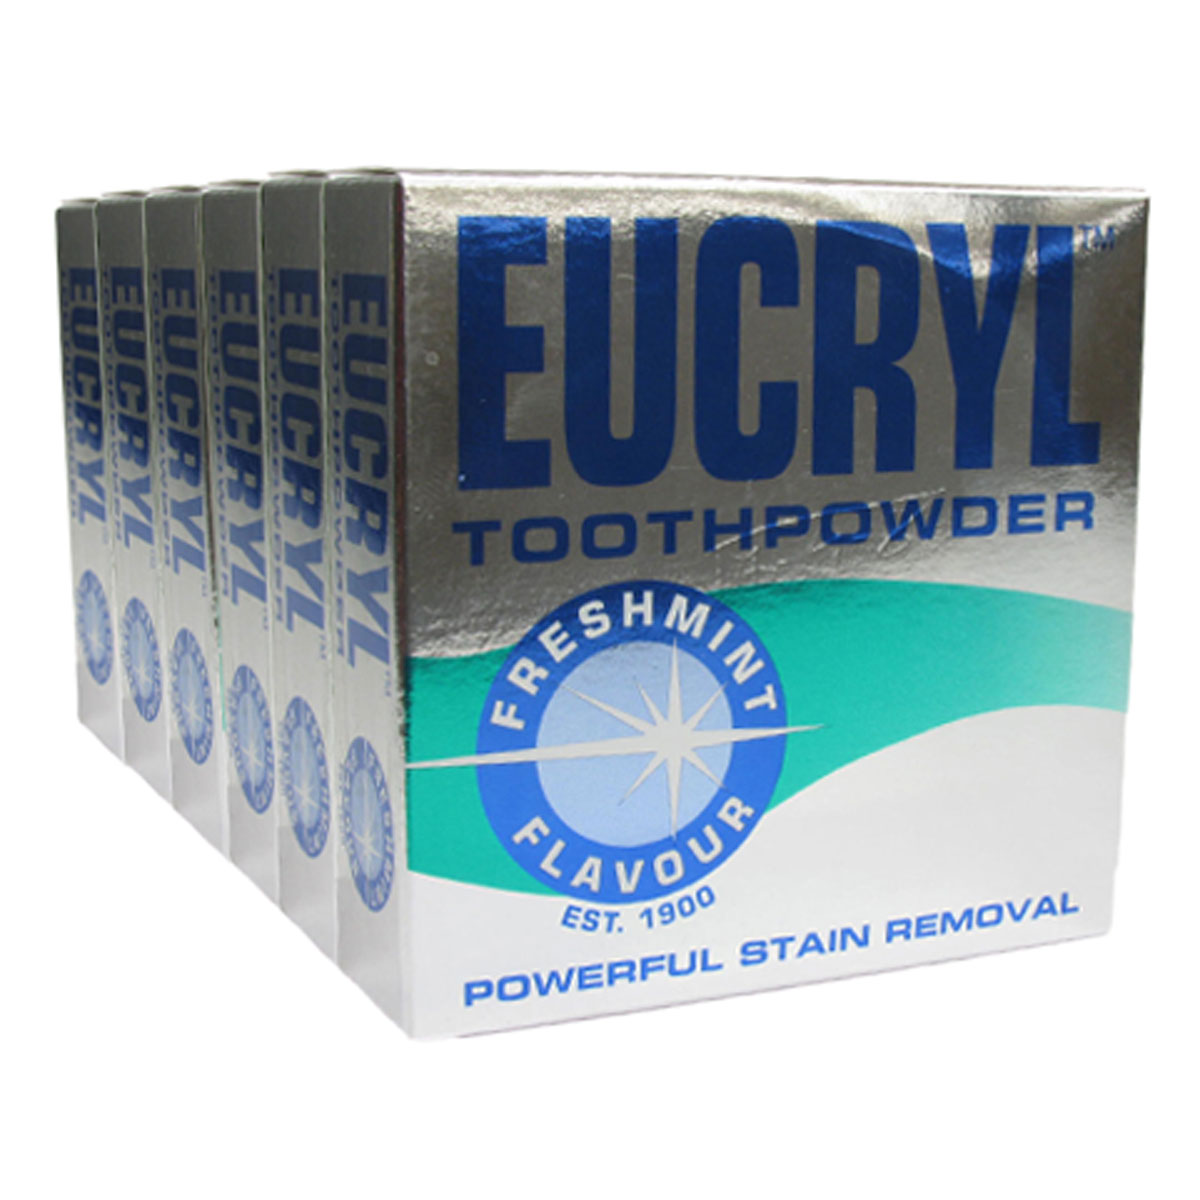 6 X Eucryl Smokers Tooth Powder Freshmint 50g Enlarged Preview